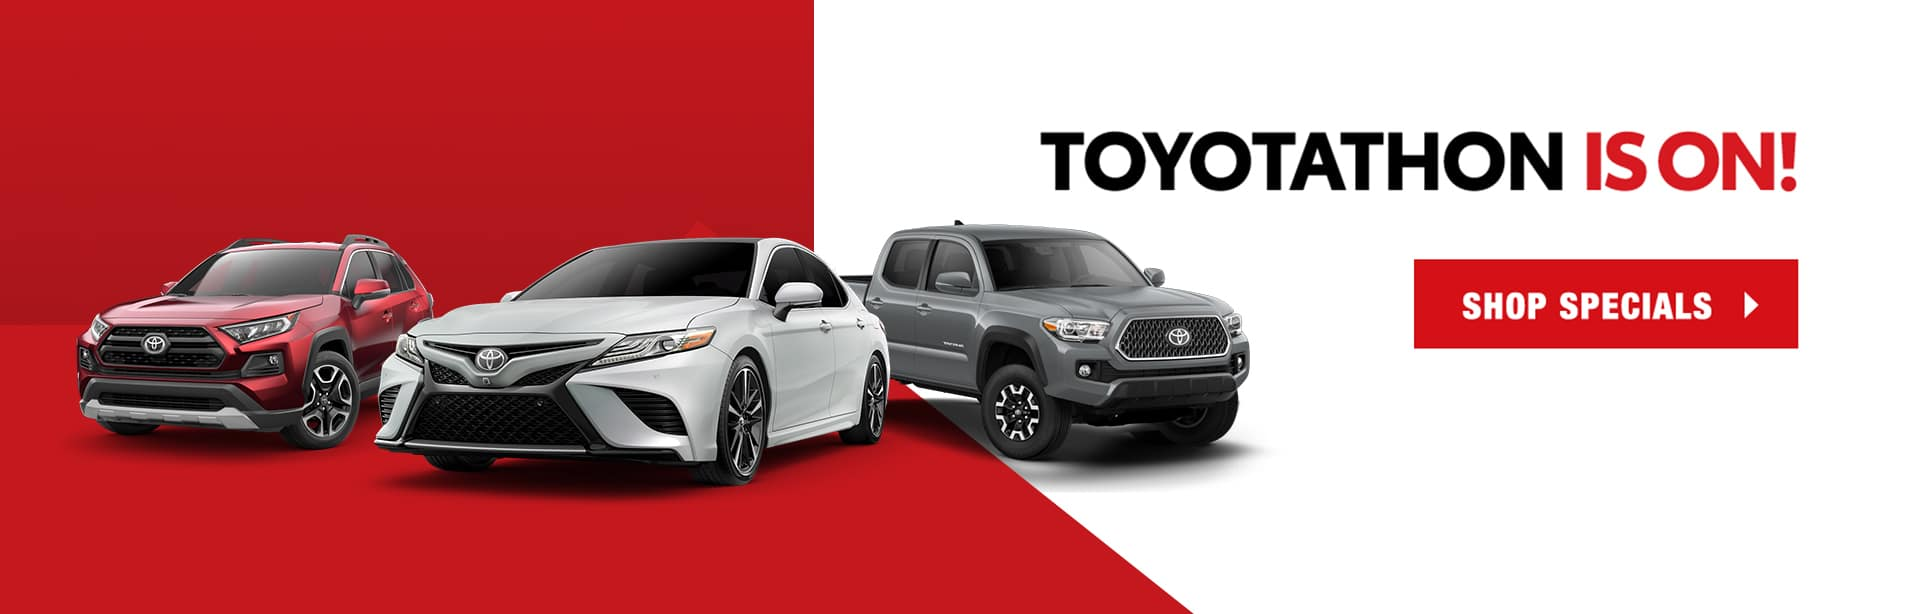 three Toyotas against a red and white background